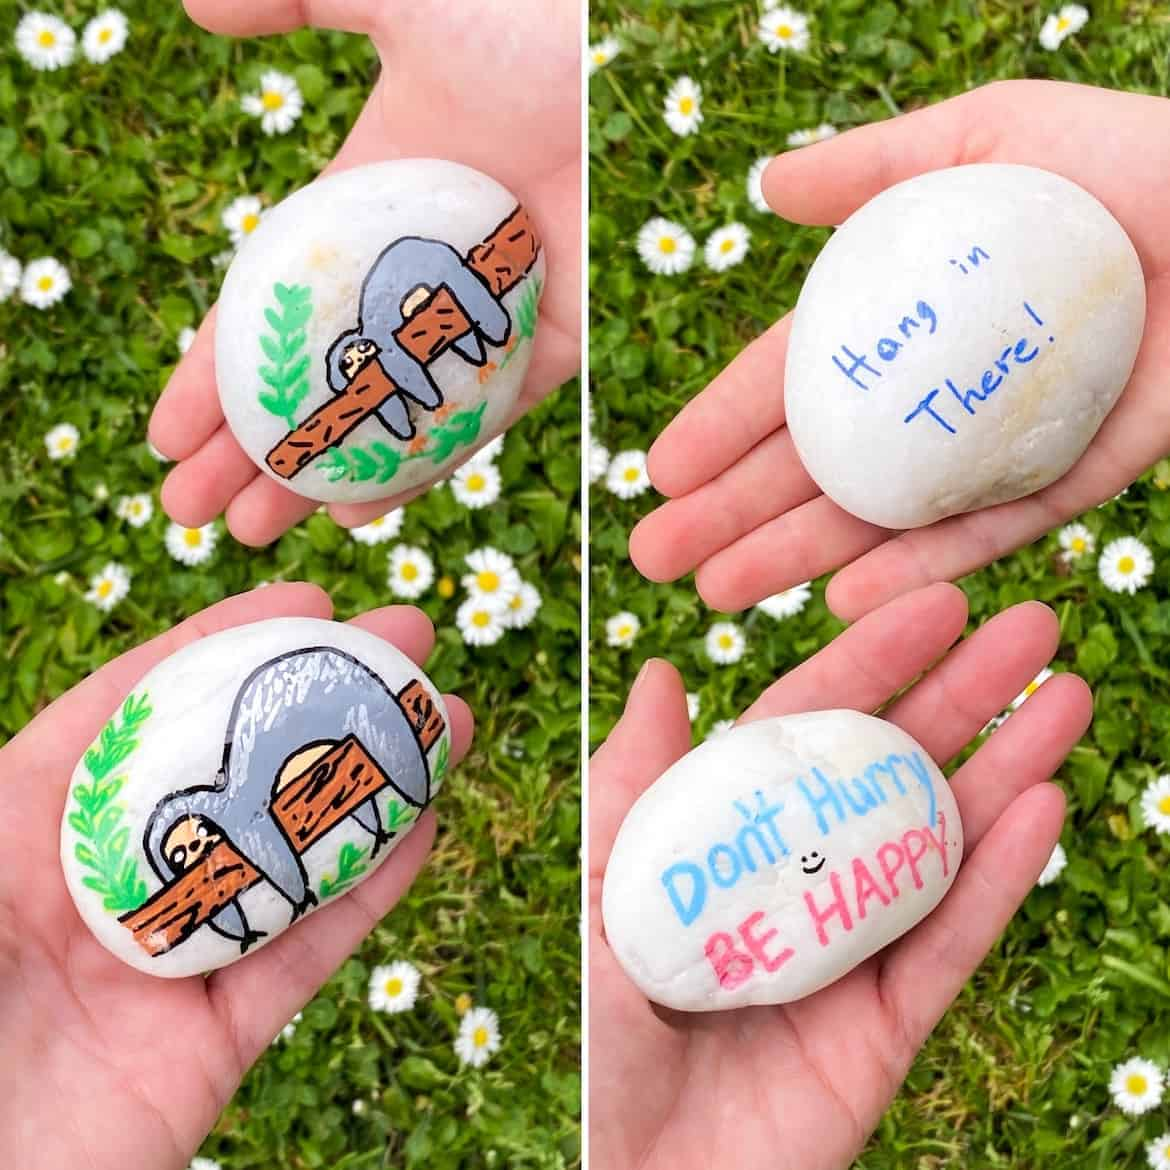 sloth kindness rock painting